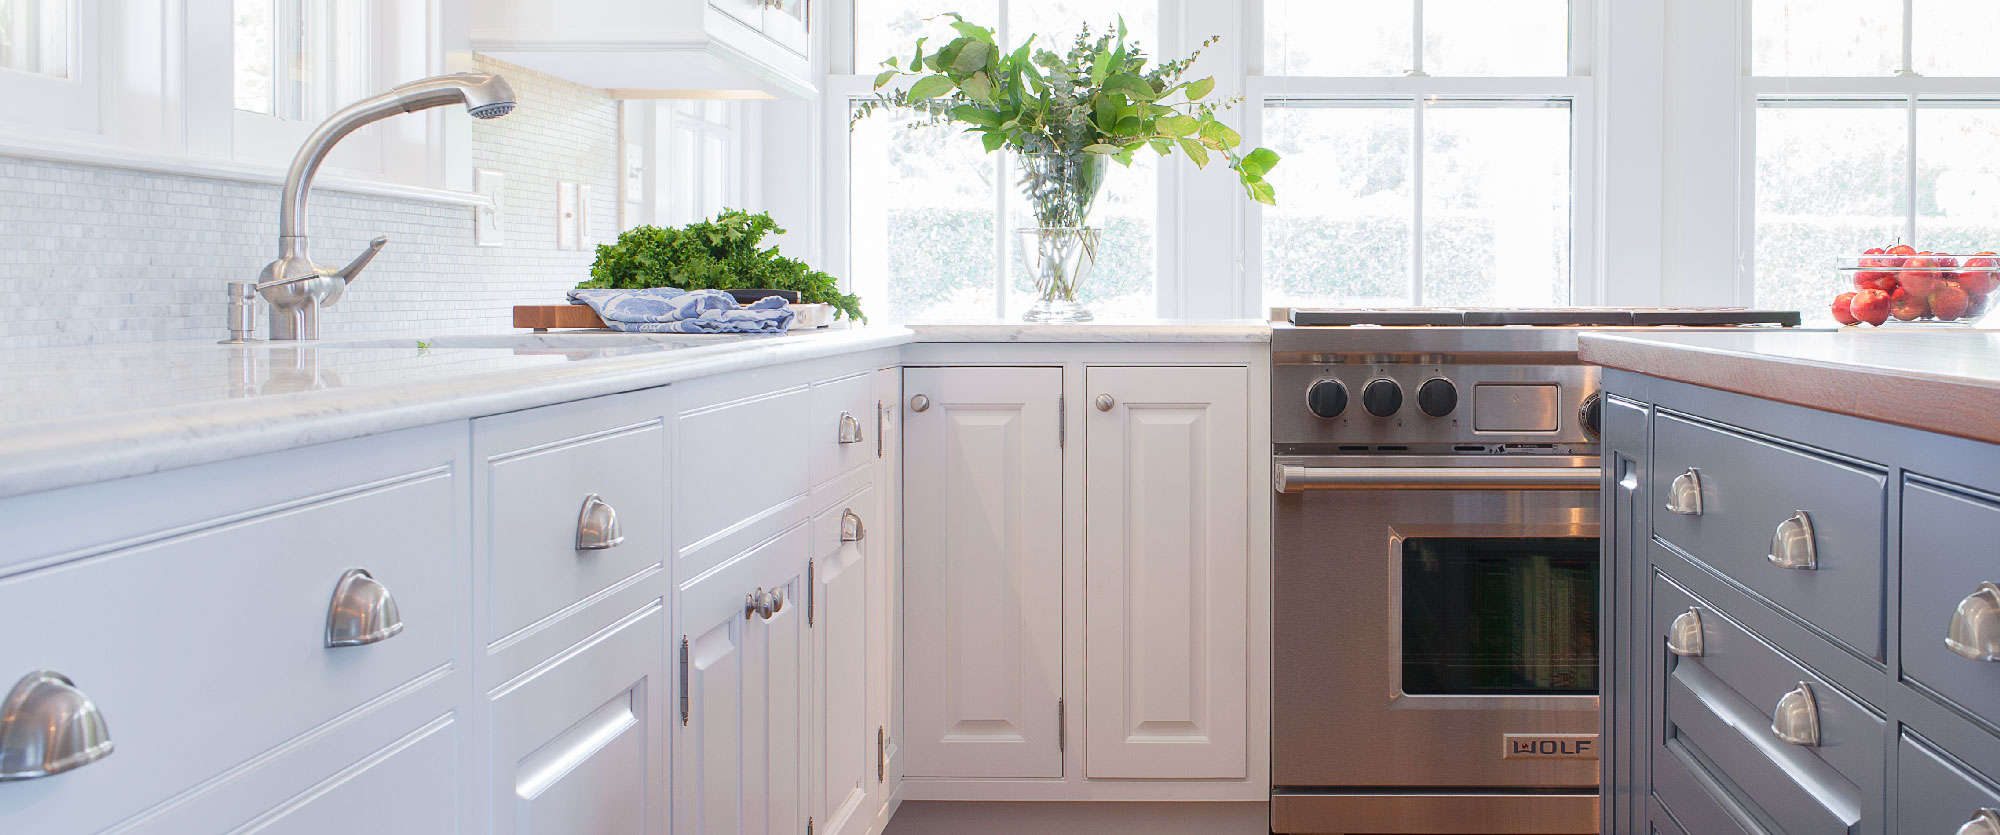 envision cabinetry affordable kitchen cabinets az